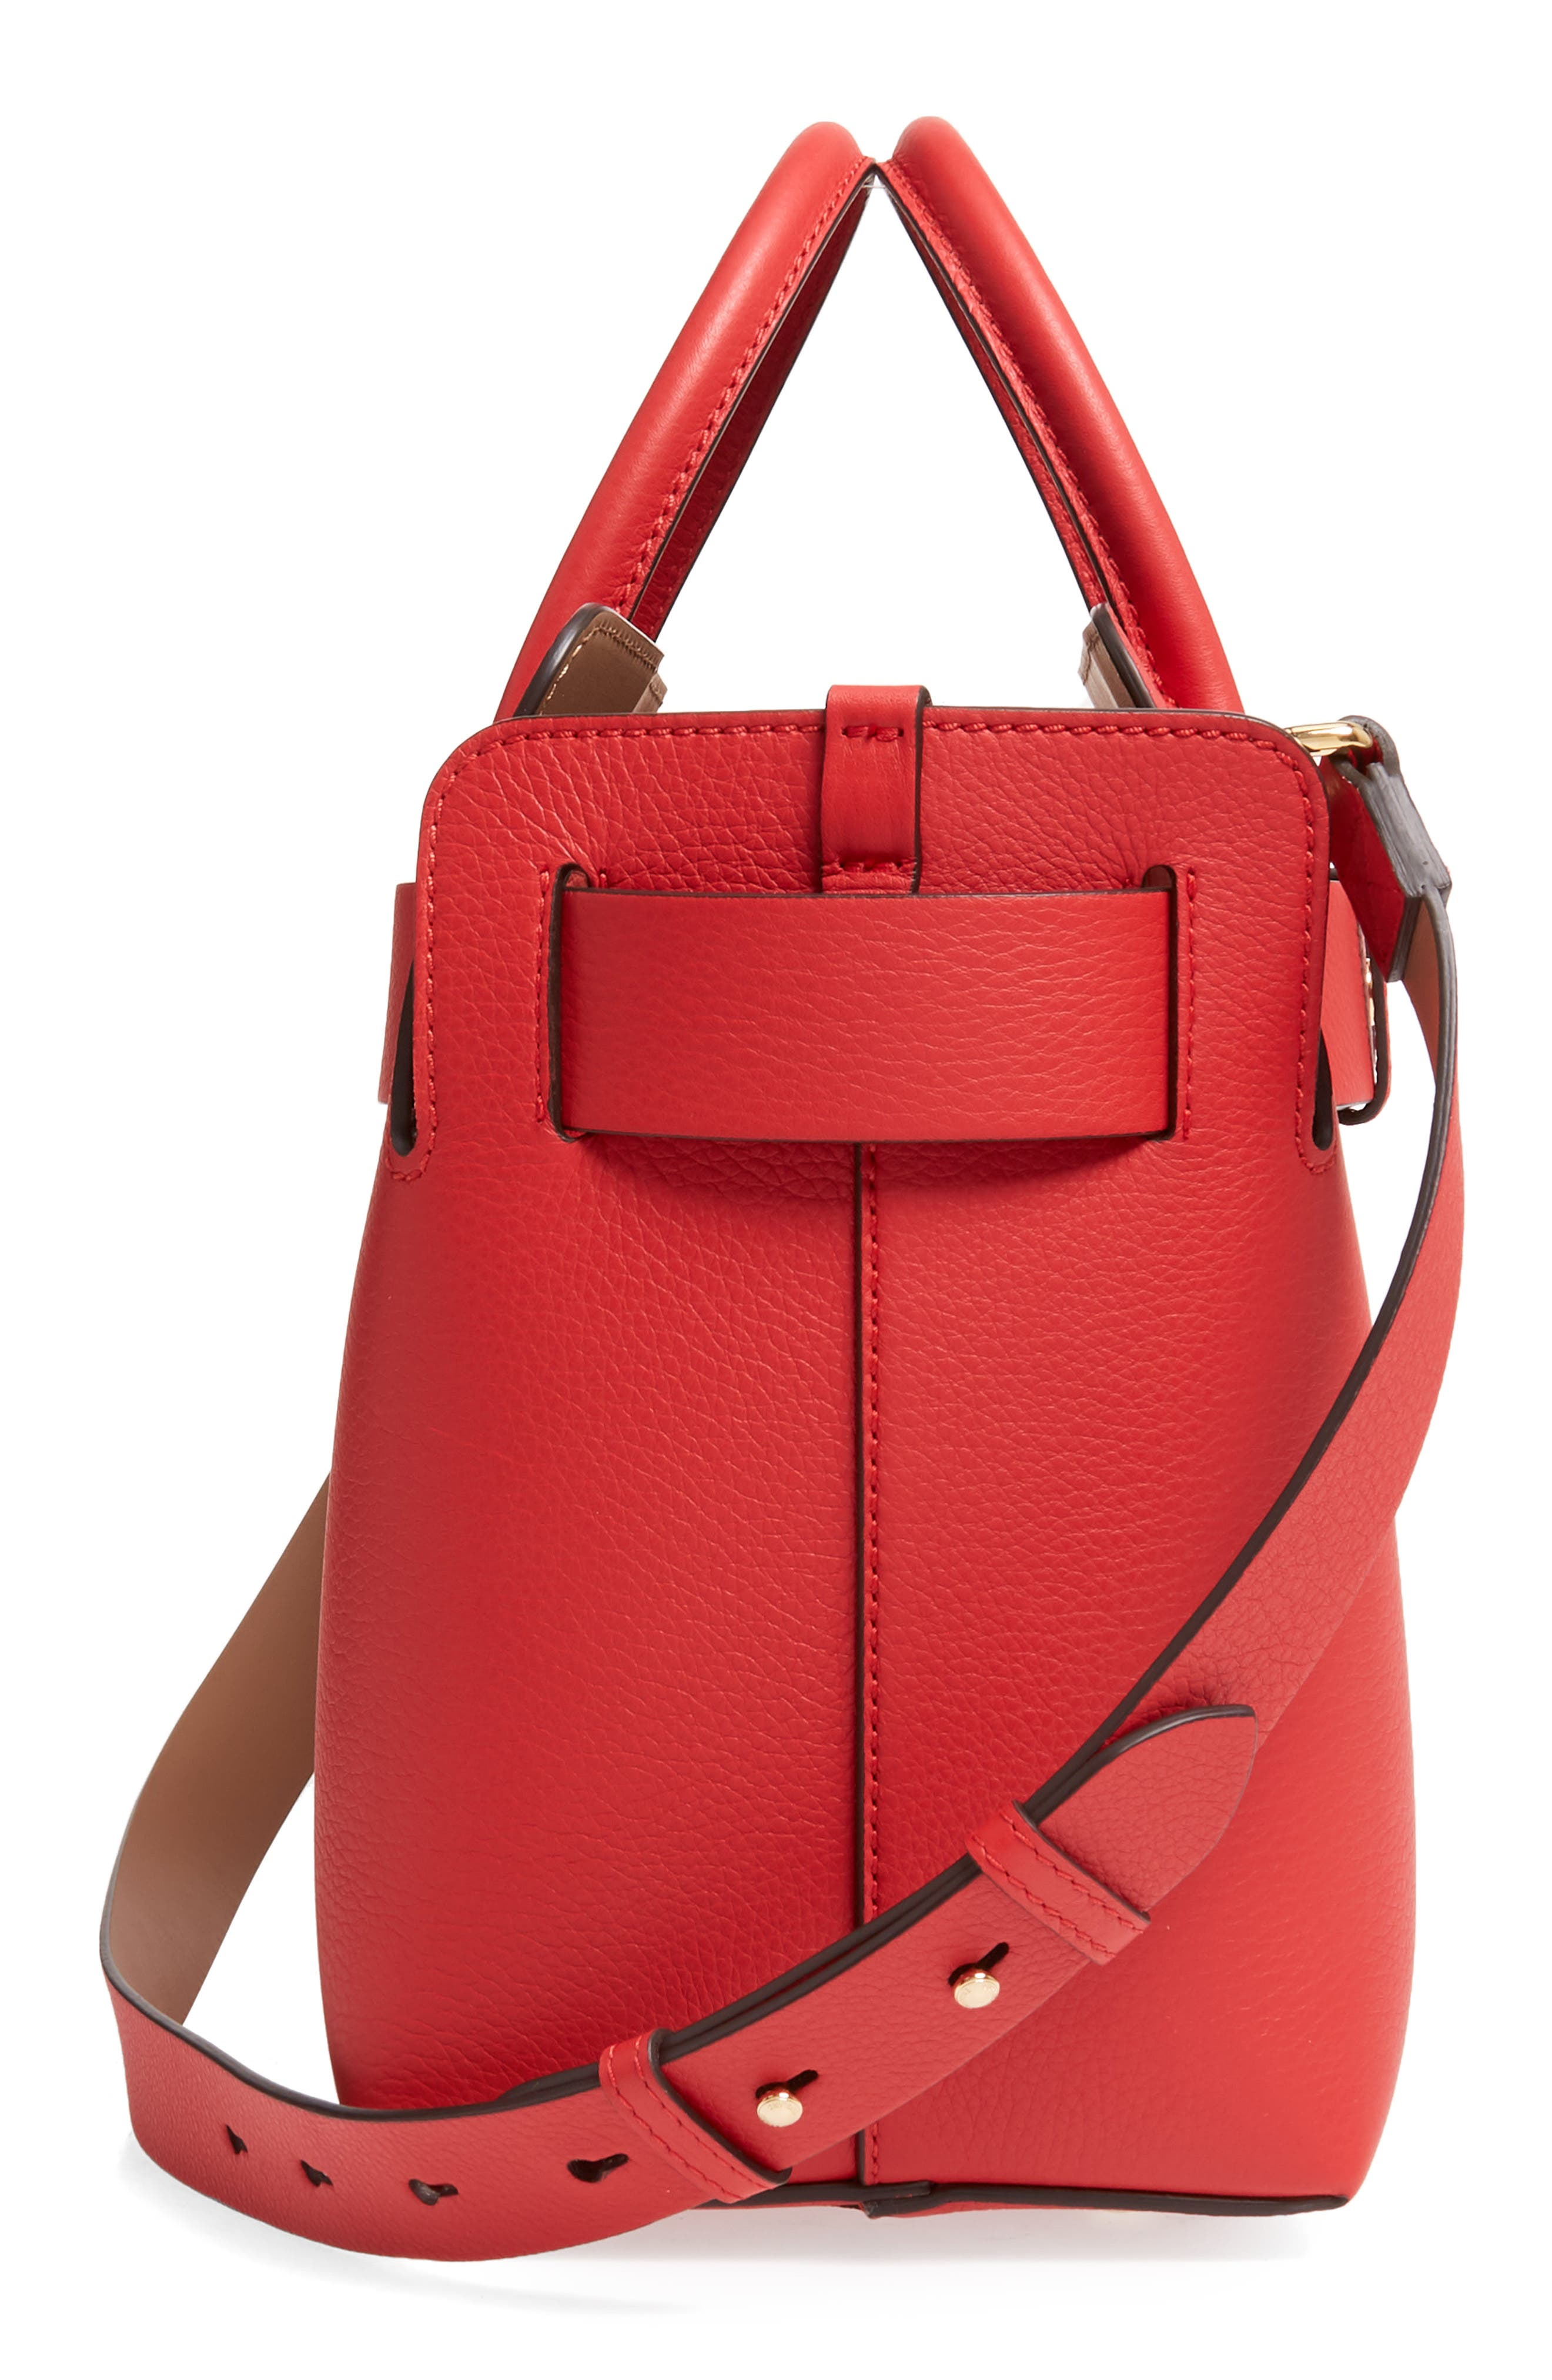 BURBERRY,                             Small Belt Leather Satchel,                             Alternate thumbnail 6, color,                             BRIGHT MILITARY RED